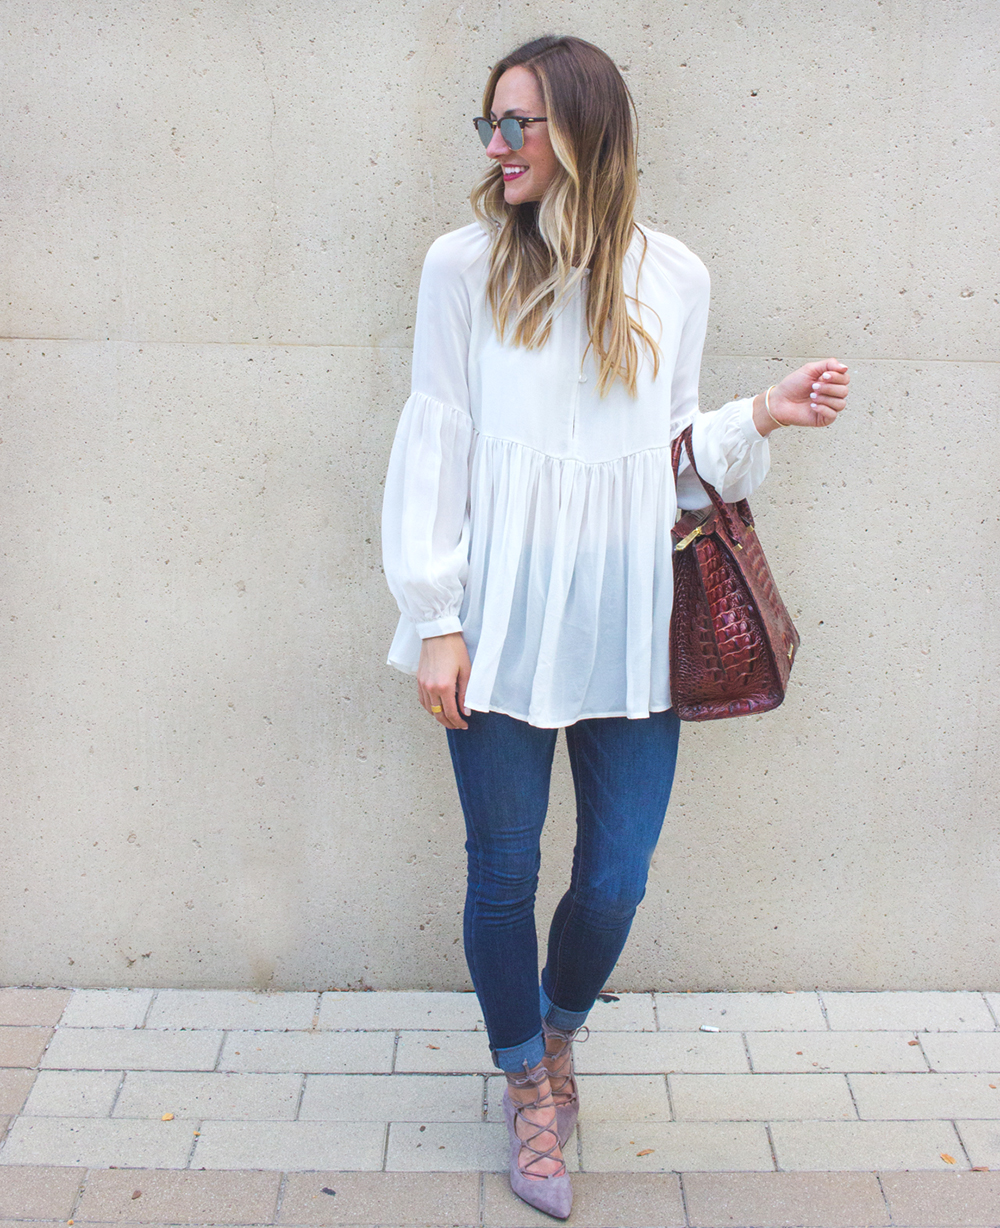 livvyland-blog-olivia-watson-sincerely-jules-white-chiffon-cameron-top-austin-texas-fashion-blogger-brahmin-priscilla-handbag-10